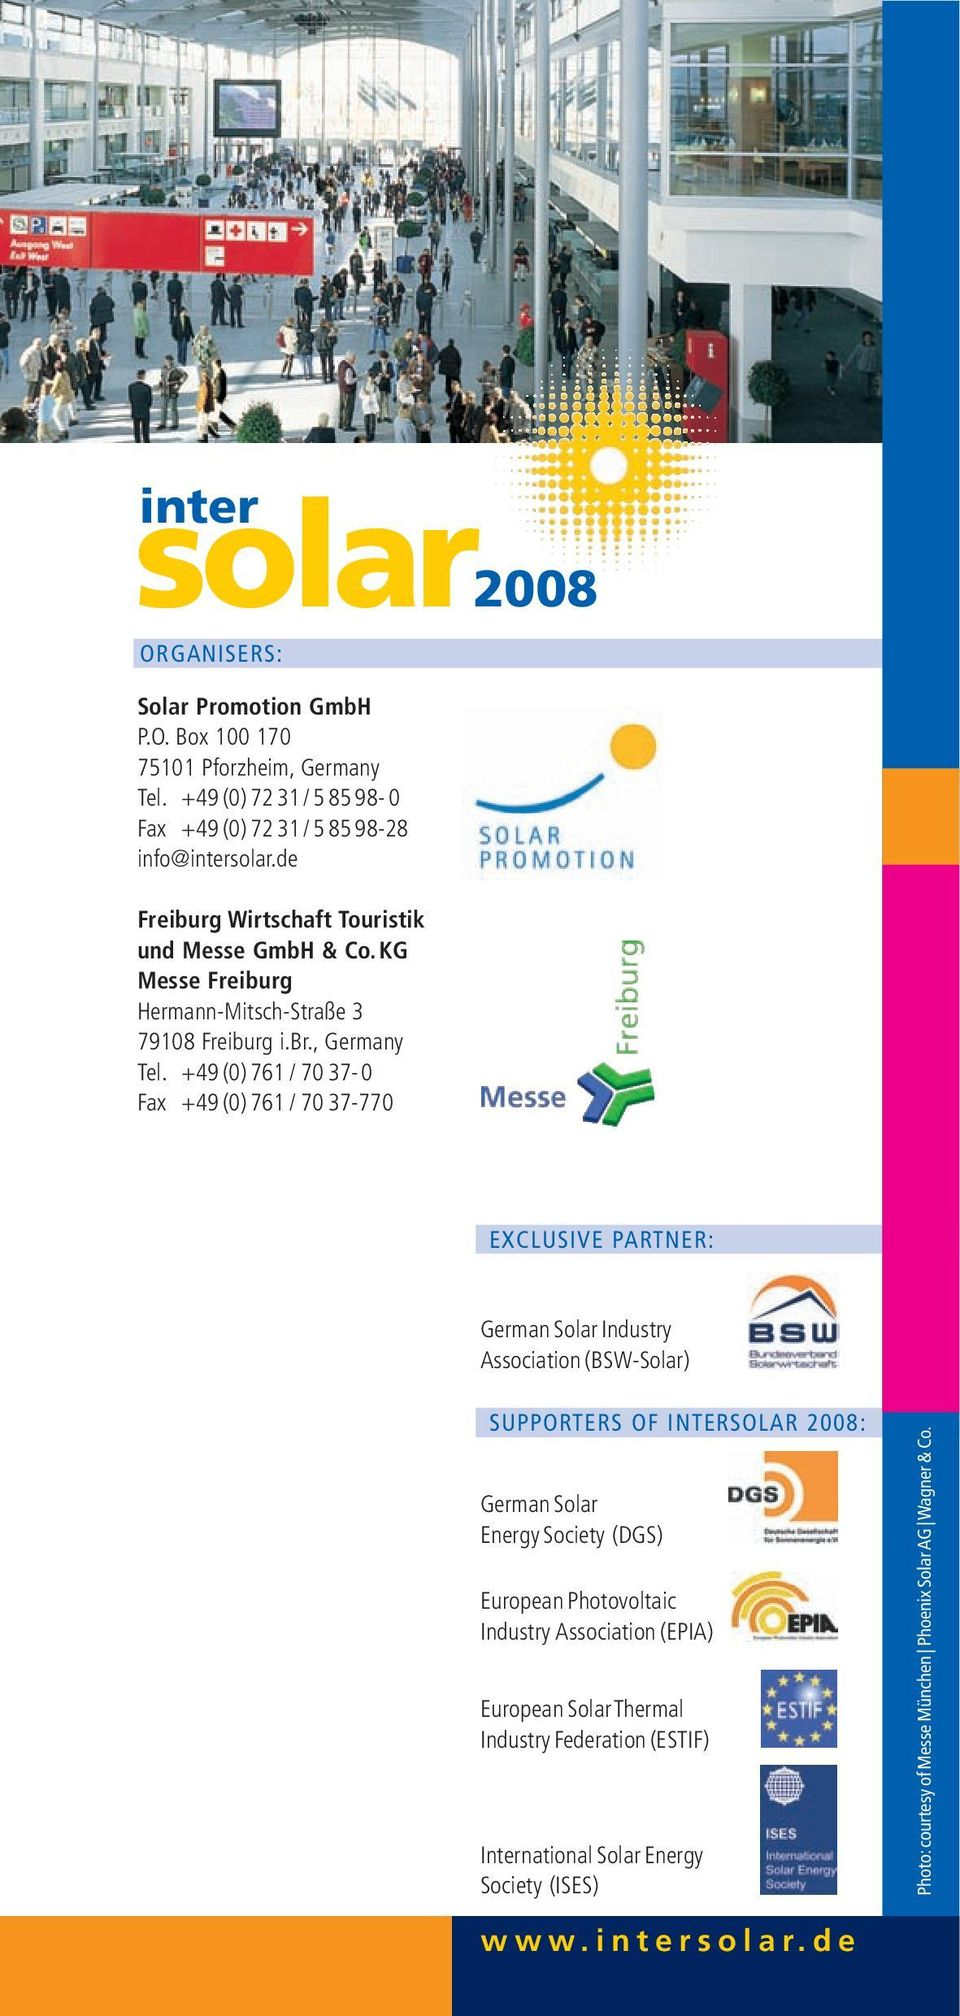 +49 (0) 761 / 70 37-0 Fax +49 (0) 761 / 70 37-770 EXCLUSIVE PARTNER: German Solar Industry Association (BSW-Solar) SUPPORTERS OF INTERSOLAR 2008: German Solar Energy